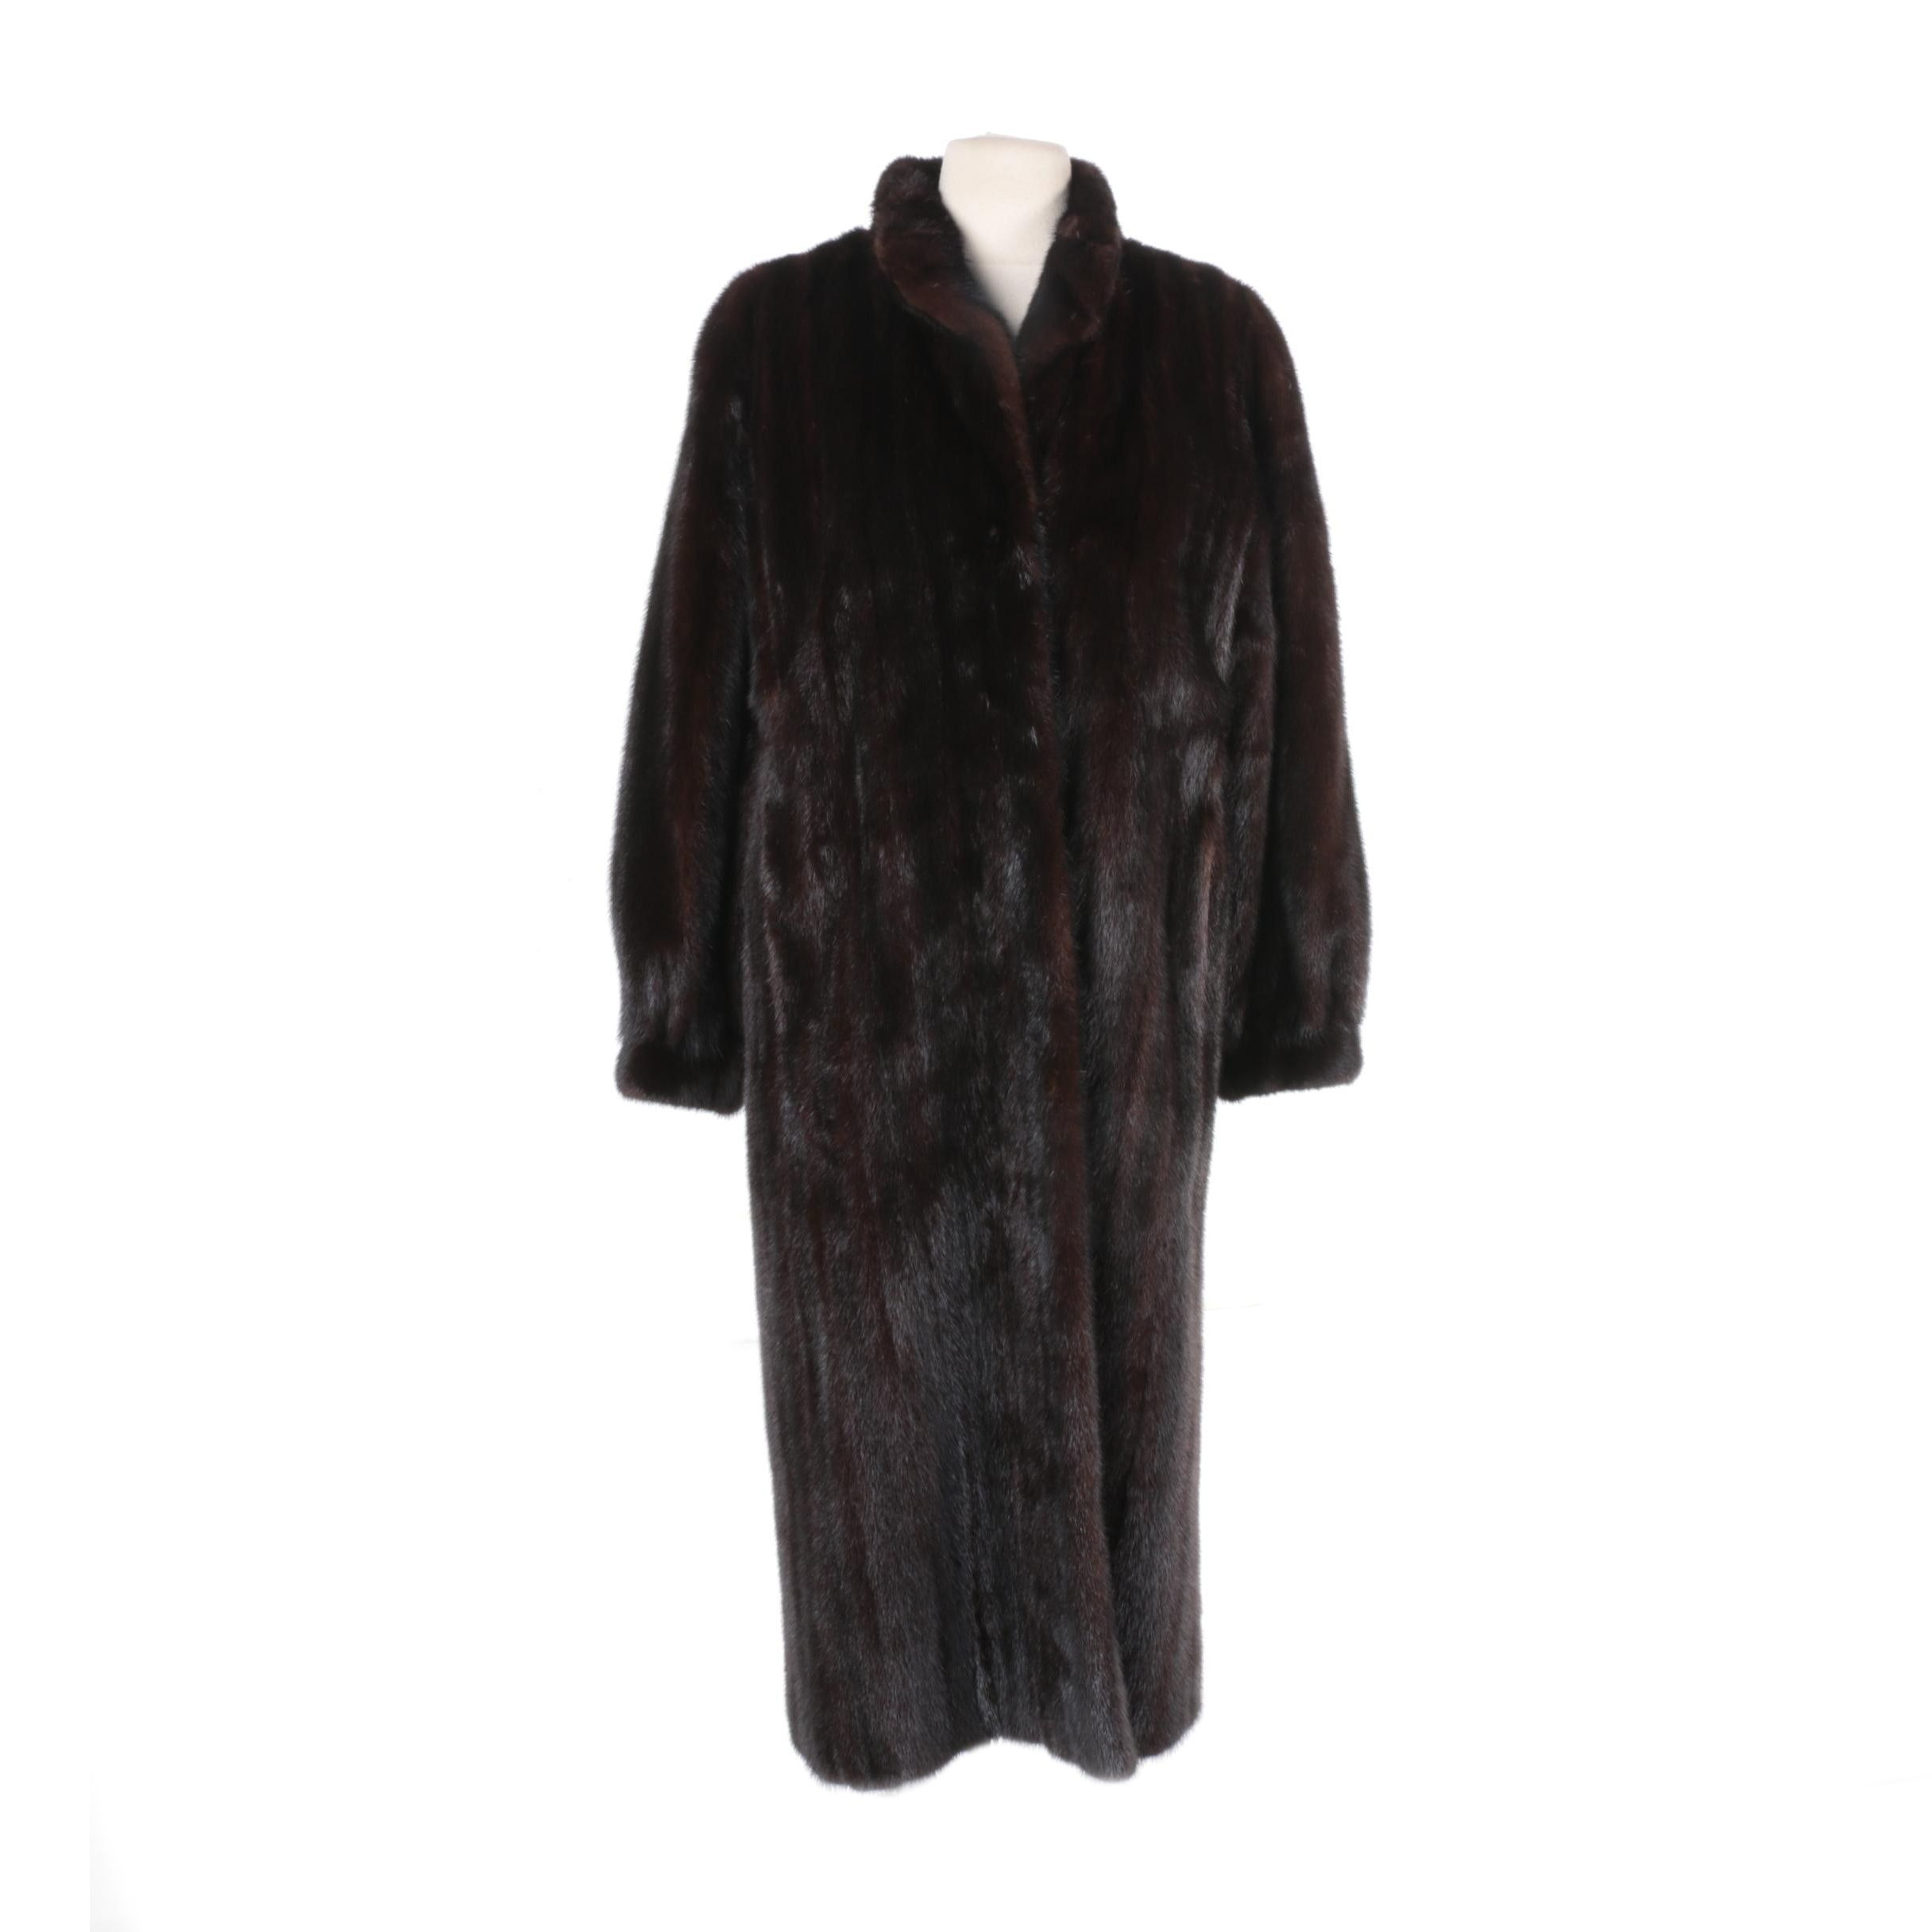 Women's Yudofsky Furriers Dark Brown Mink Fur Coat